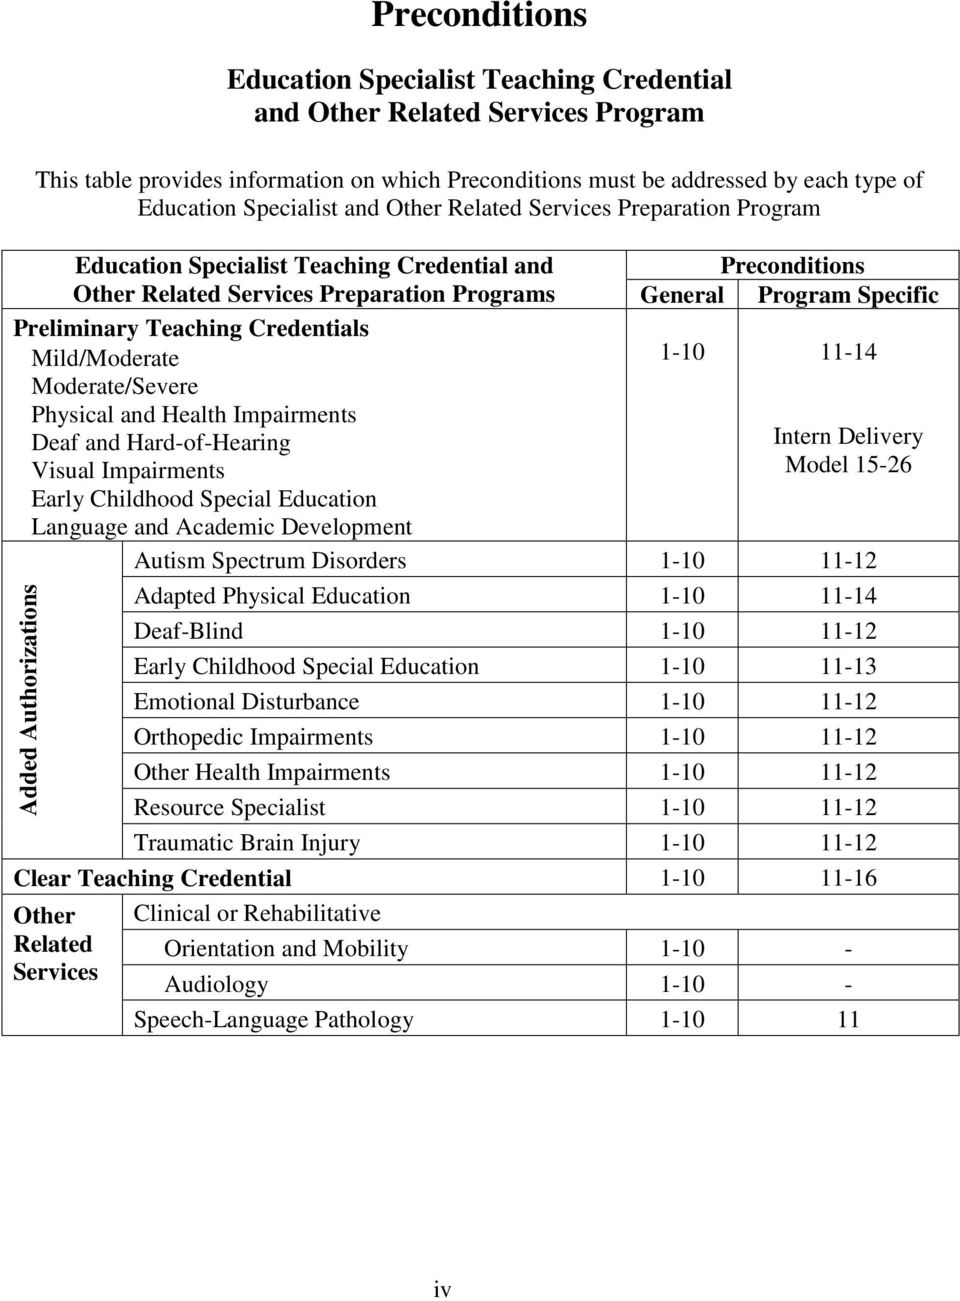 Physical and Health Impairments Deaf and Hard-of-Hearing Visual Impairments Early Childhood Special Education Language and Academic Development Added Authorizations Preconditions General Program